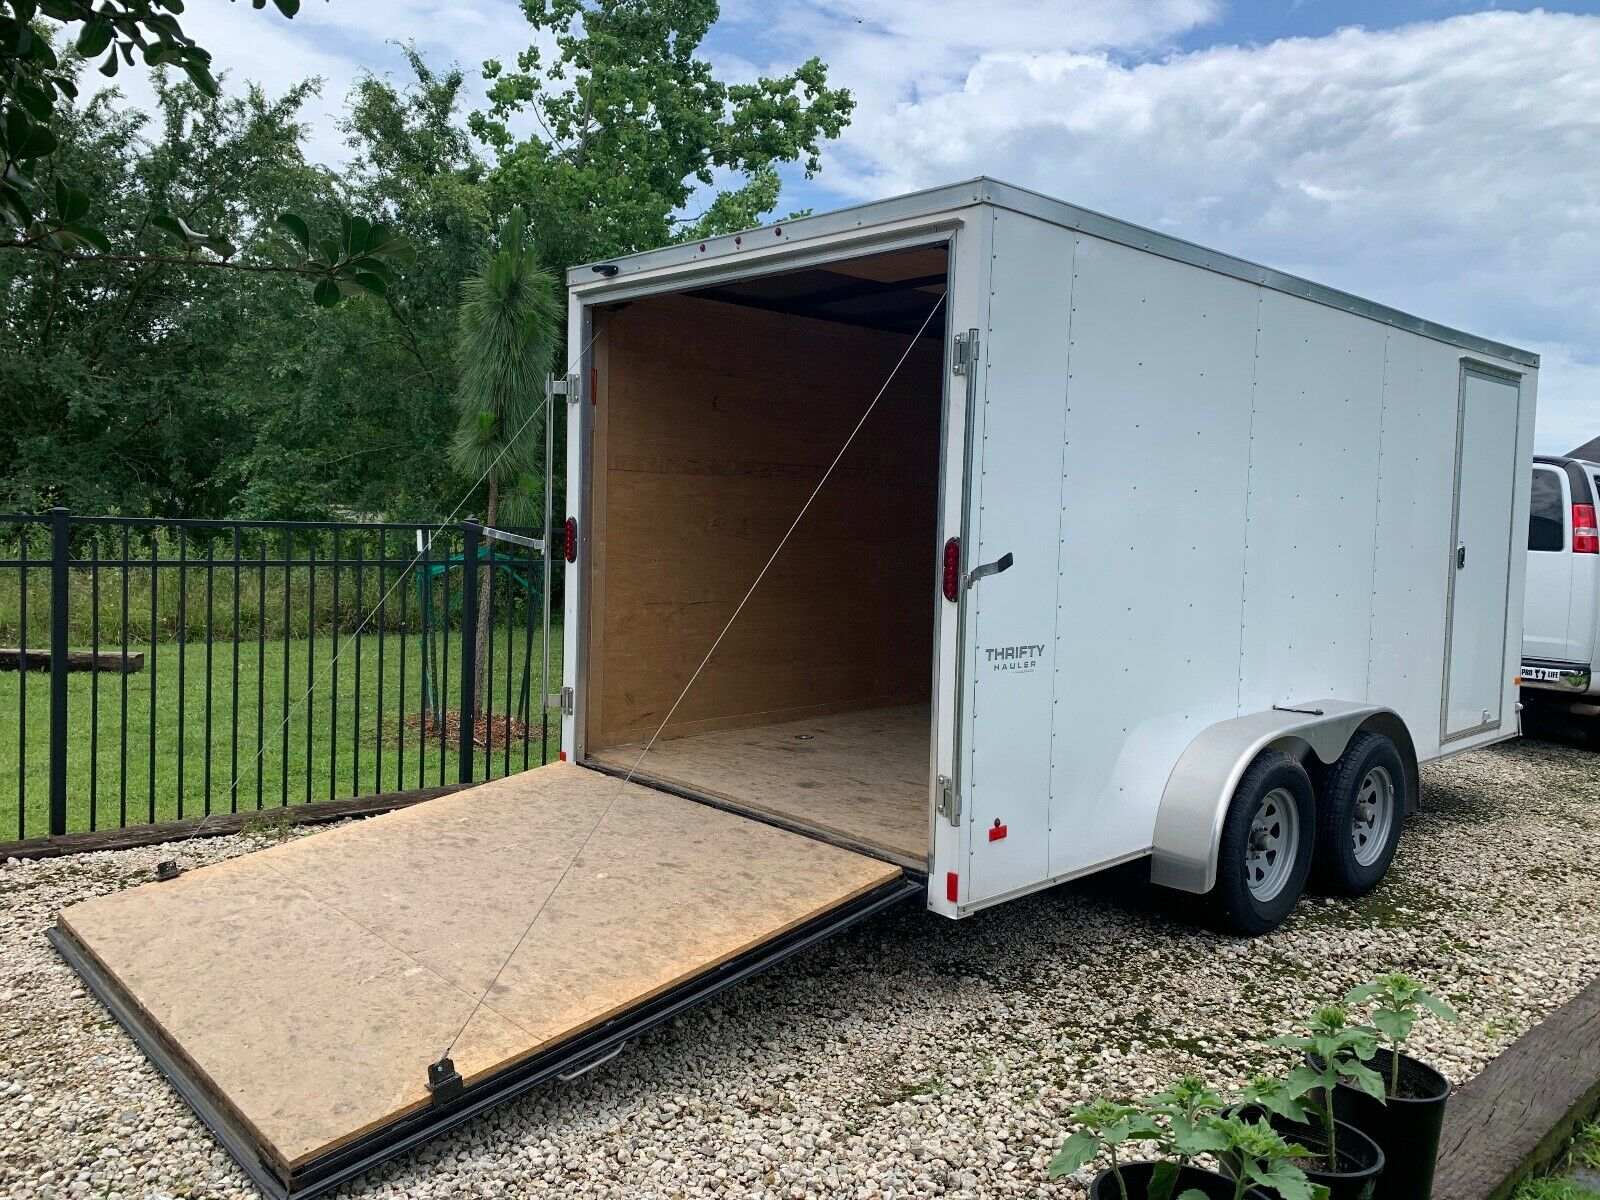 2017 ENCLOSED V-NOSE CARGO UTILITY TRAILER 16' WITH RAMP AND SIDE DOOR